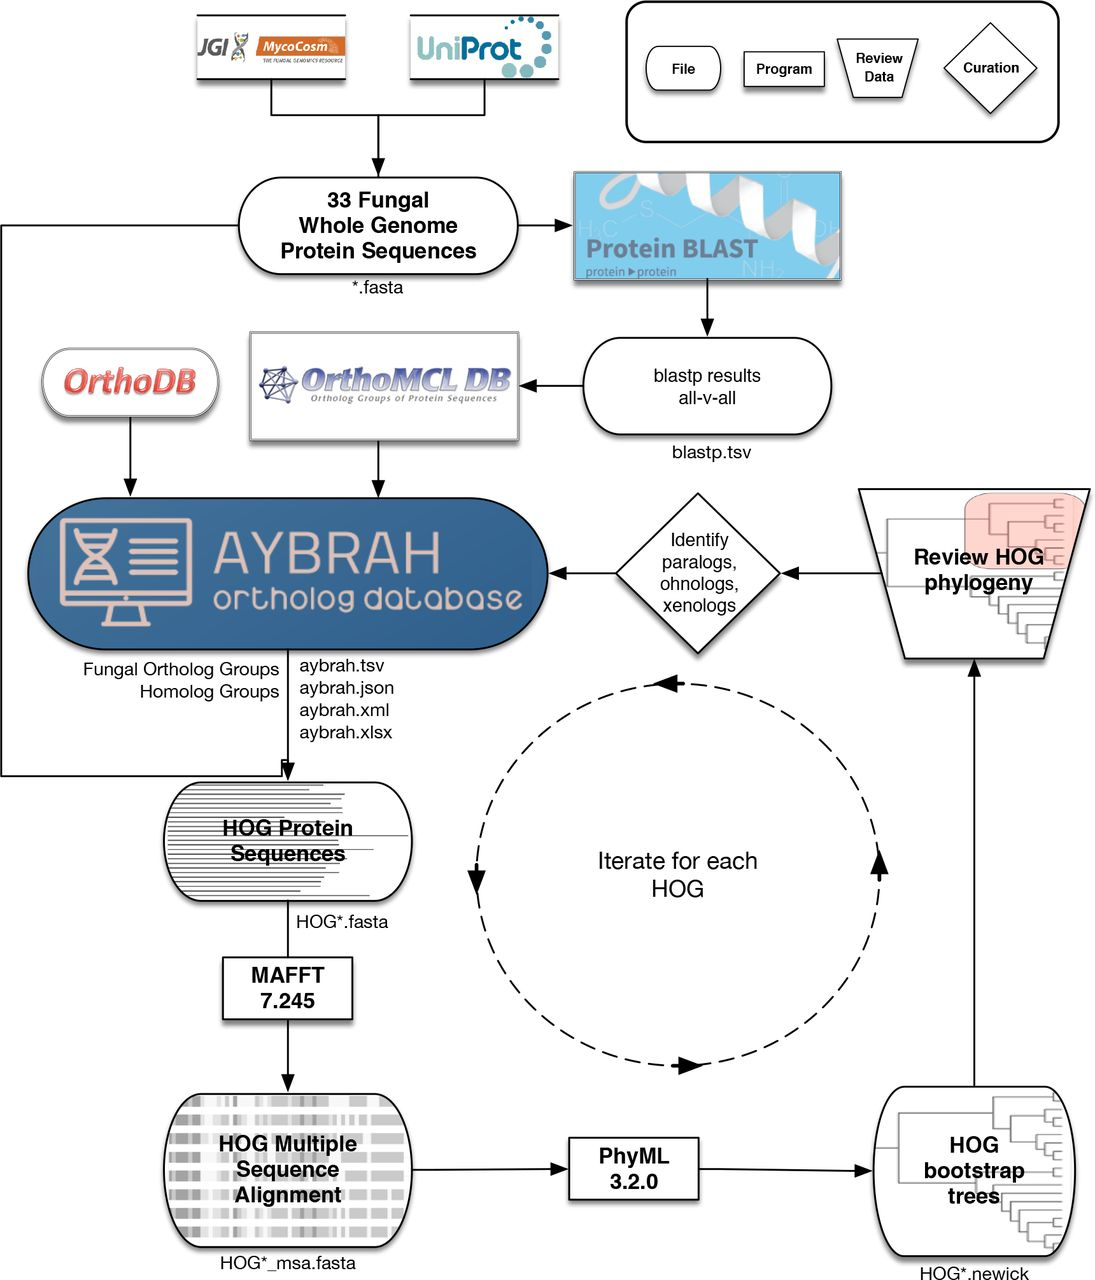 AYbRAH: a curated ortholog database for yeasts and fungi